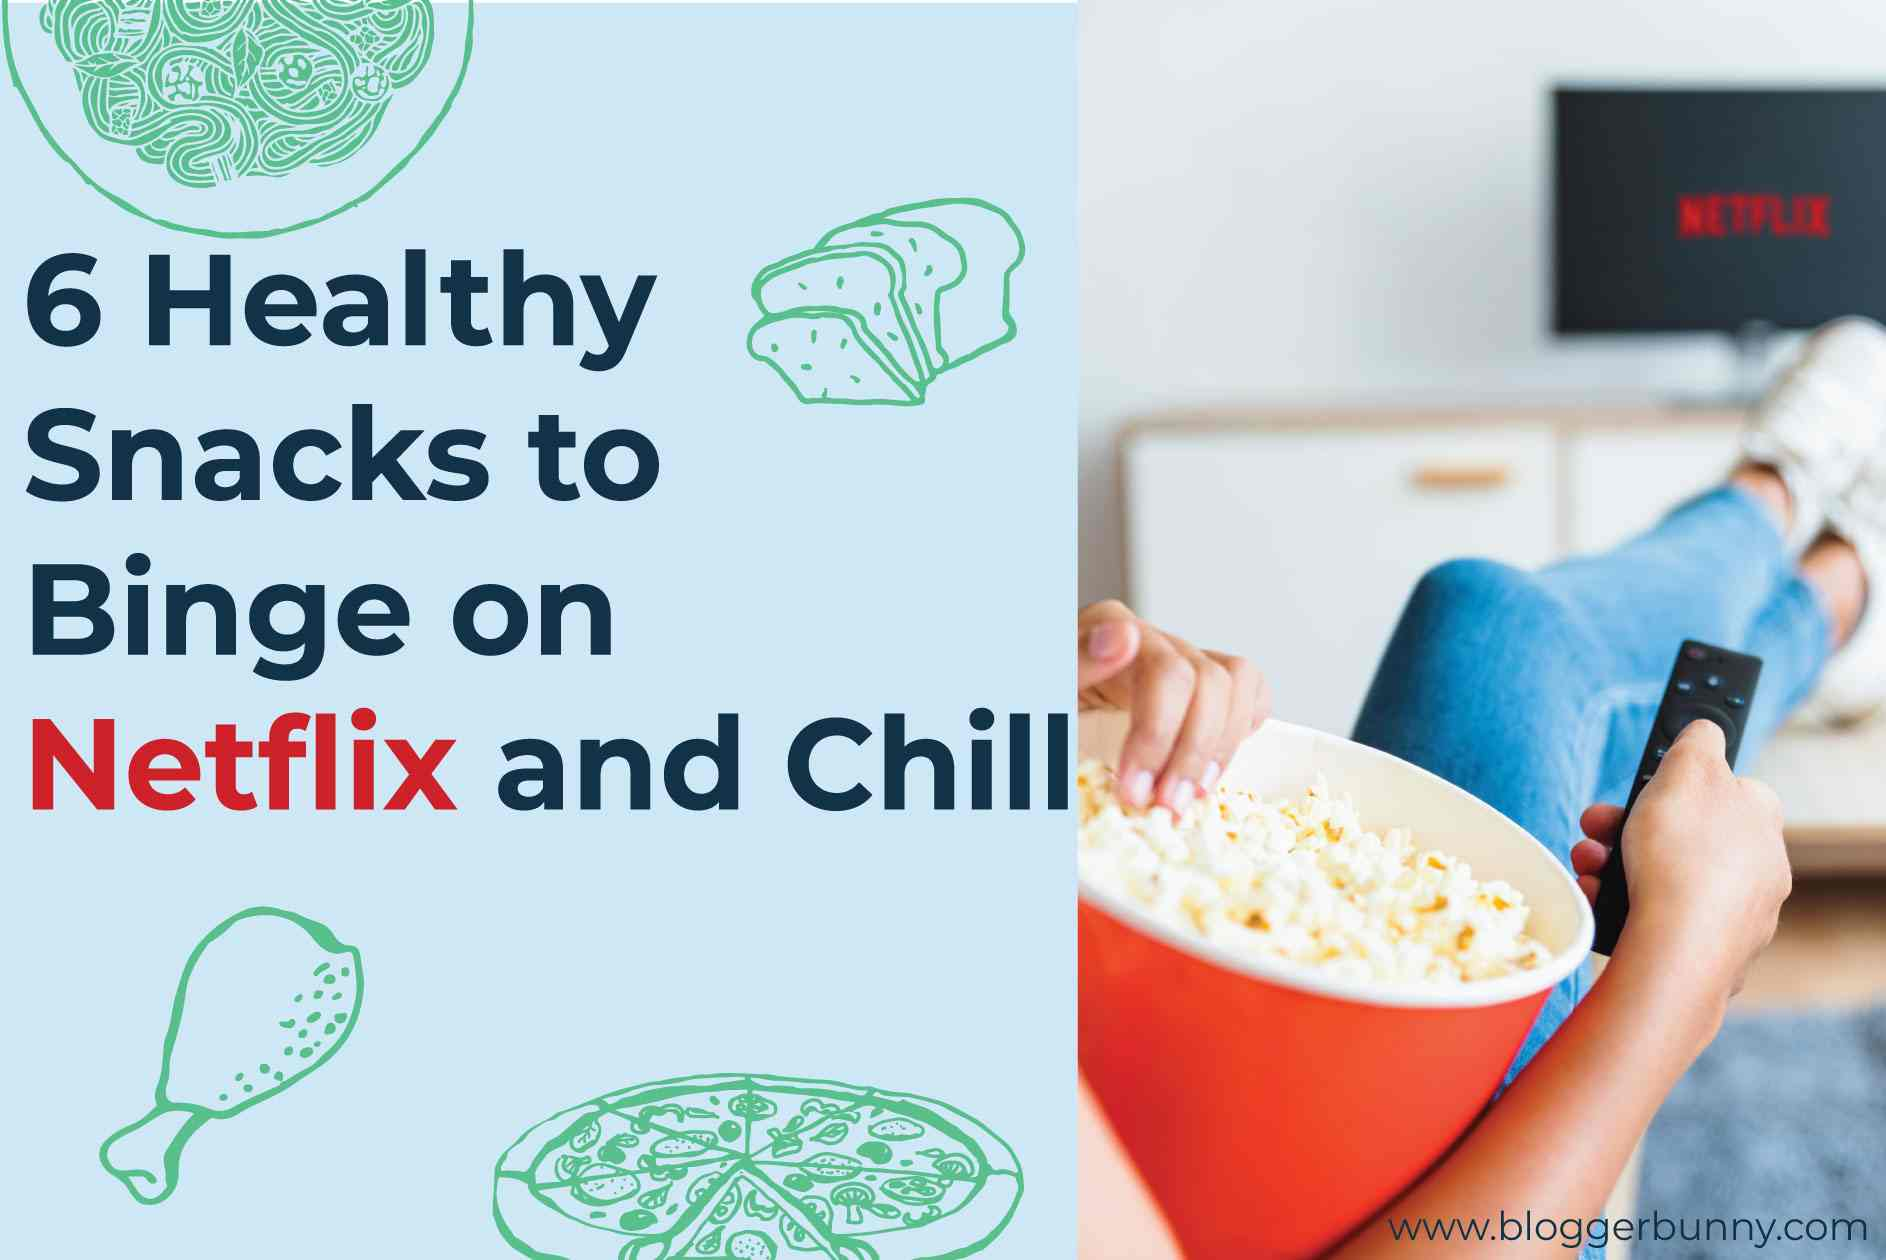 6 Healthy Snacks To Binge On Netflix and Chill